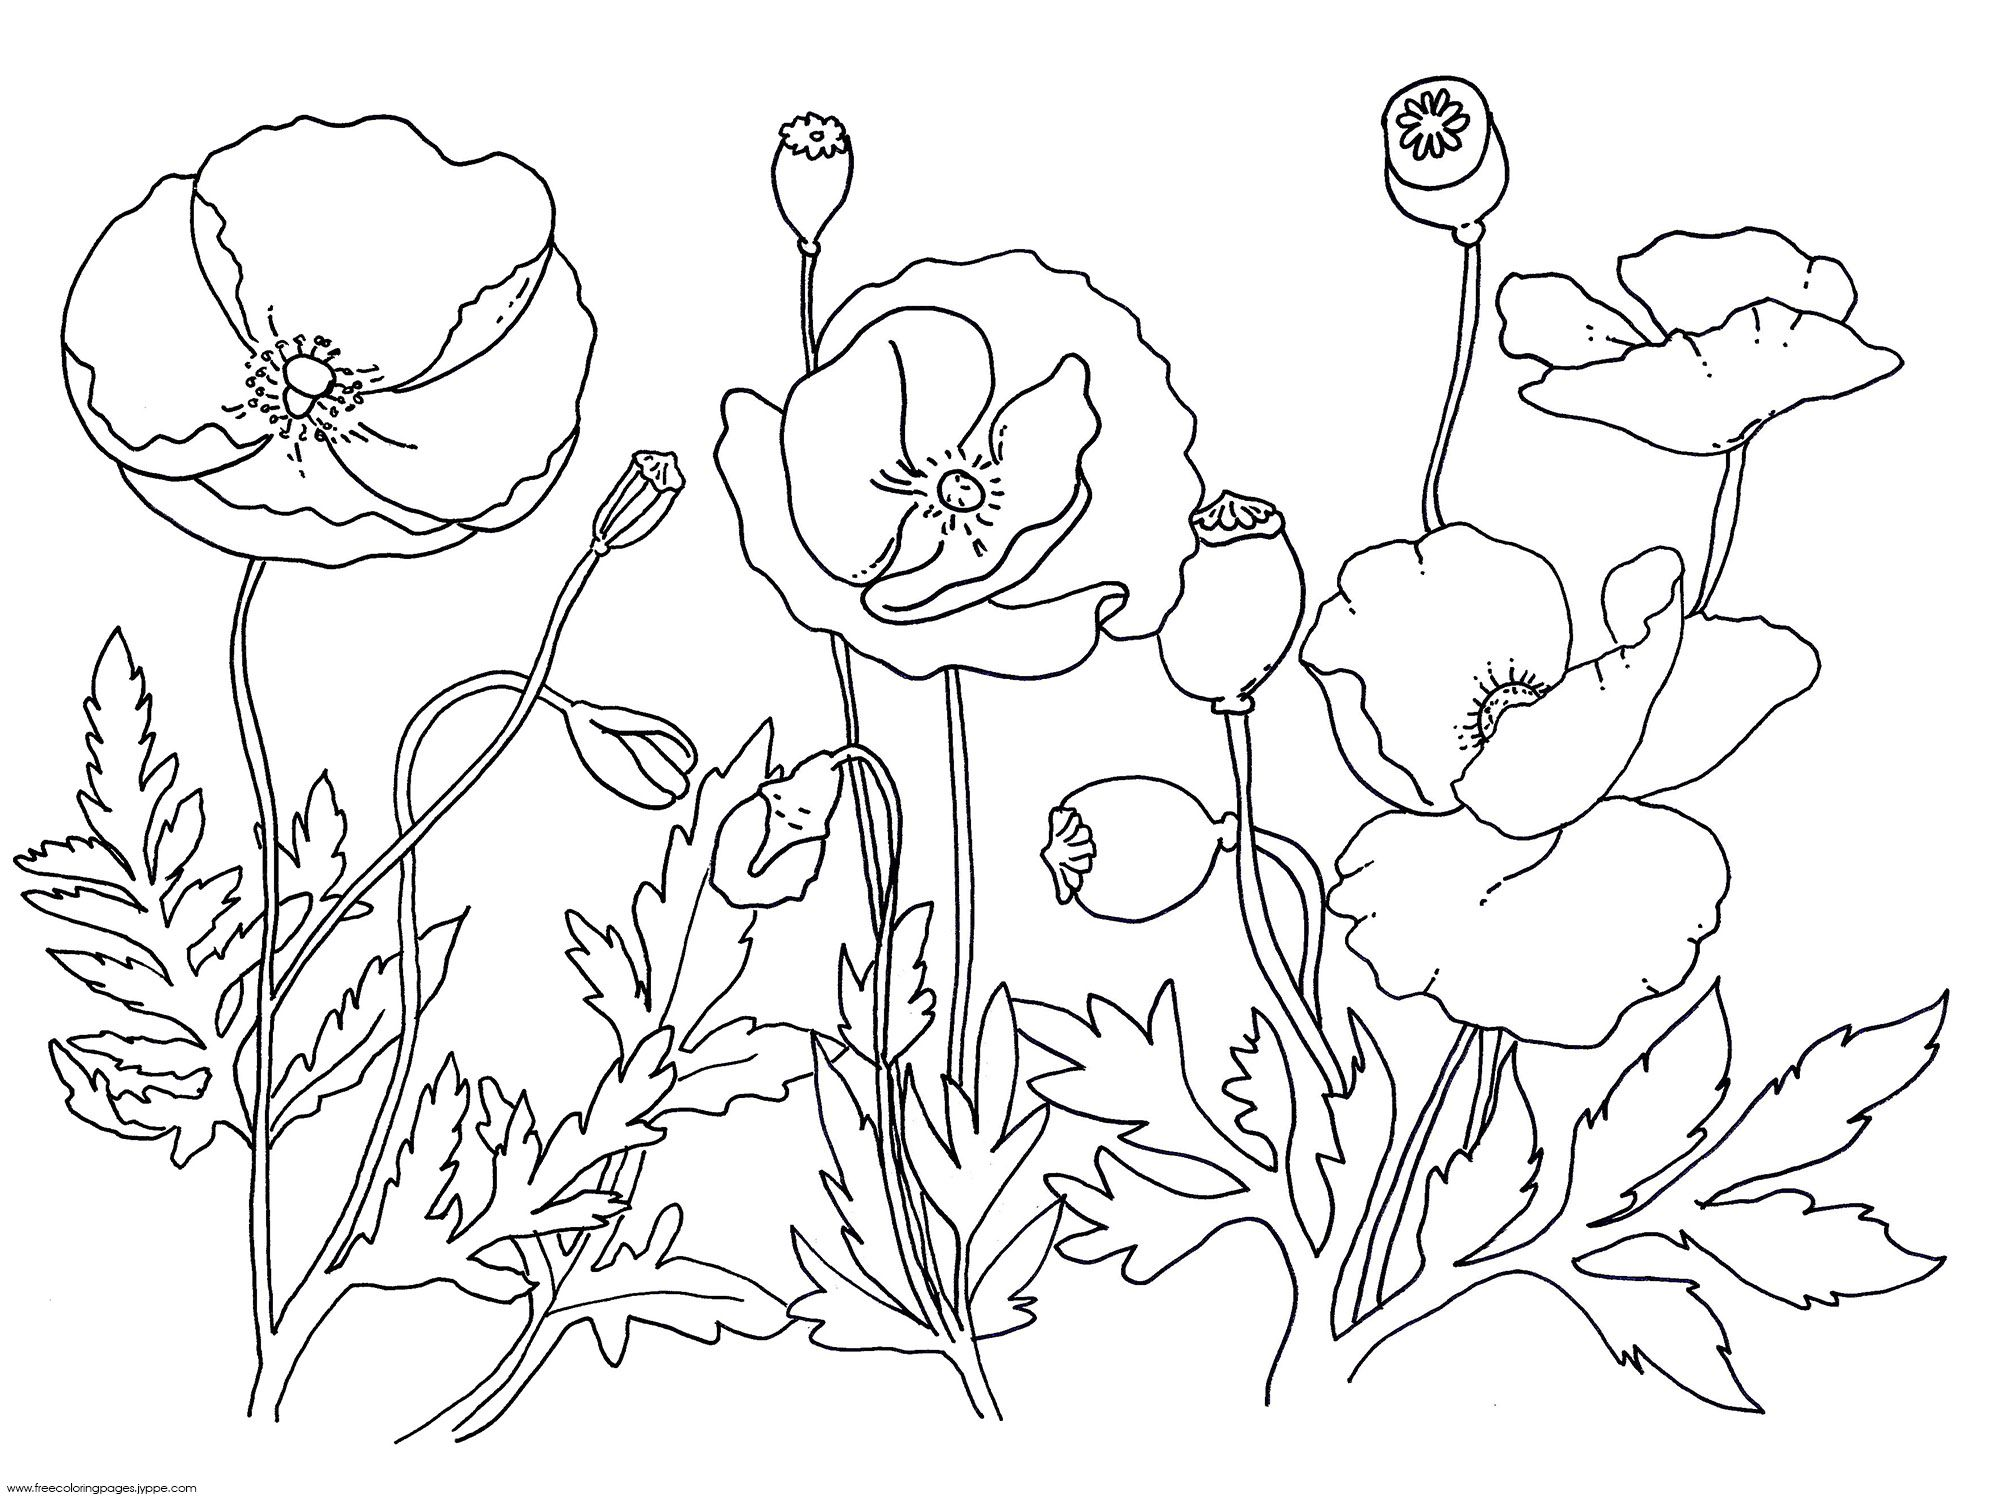 Remembrance Day Poppies, Blooming Flowers Free Coloring